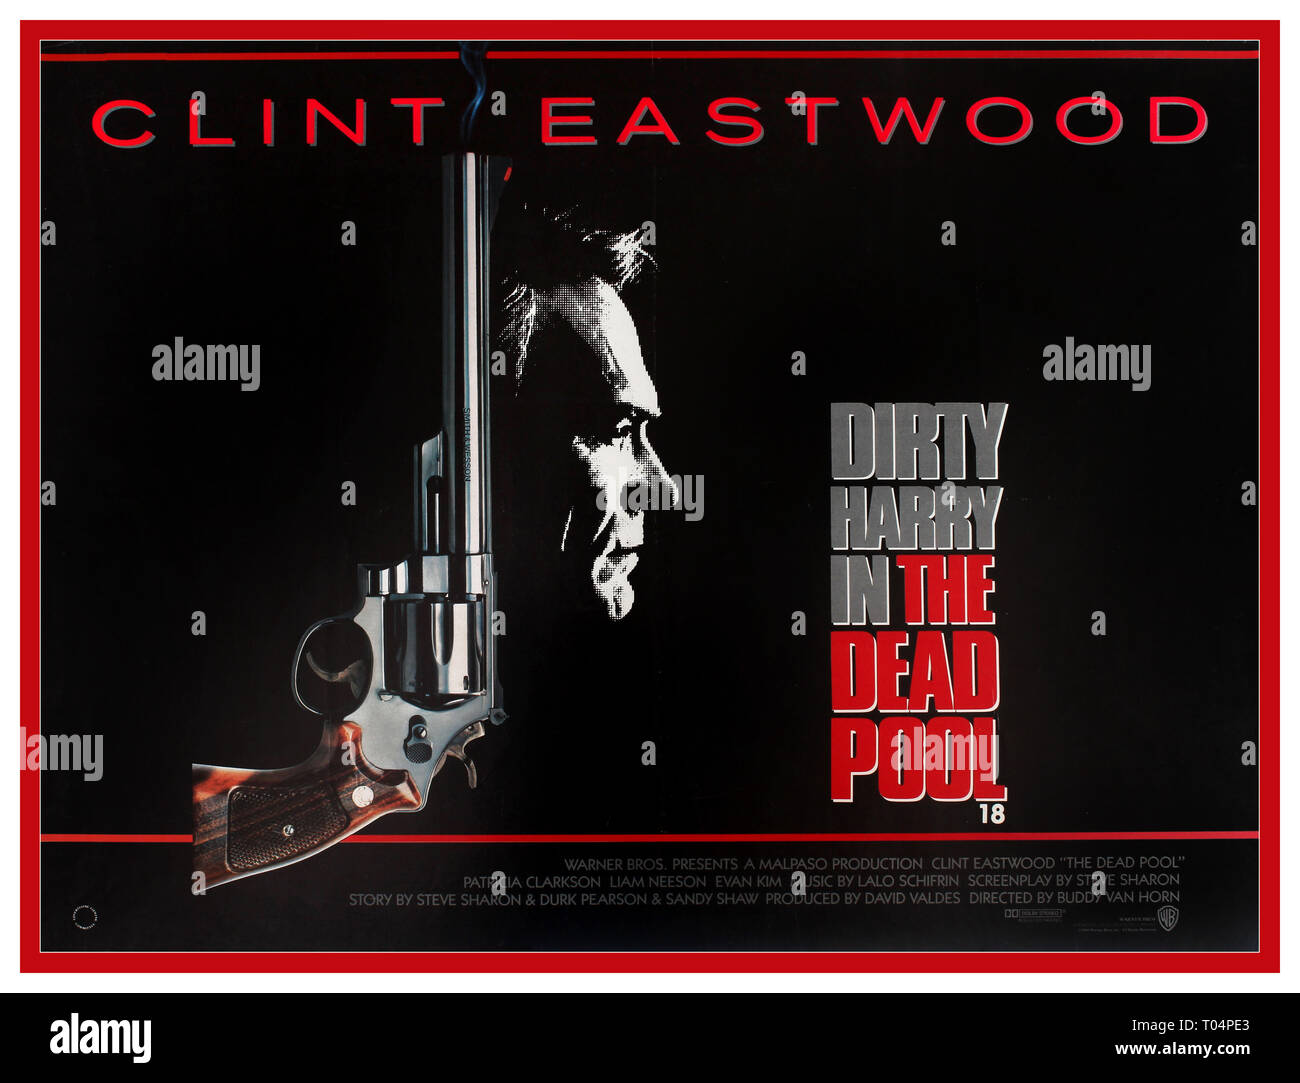 DIRTY HARRY CLINT EASTWOOD 1980's vintage movie poster for The Dead Pool a 1988 American action film directed by Buddy Van Horn, written by Steve Sharon, and starring Clint Eastwood as Inspector 'Dirty' Harry Callahan. It is the fifth and final film in the Dirty Harry film series, set in San Francisco, California USA 1988. - Stock Image